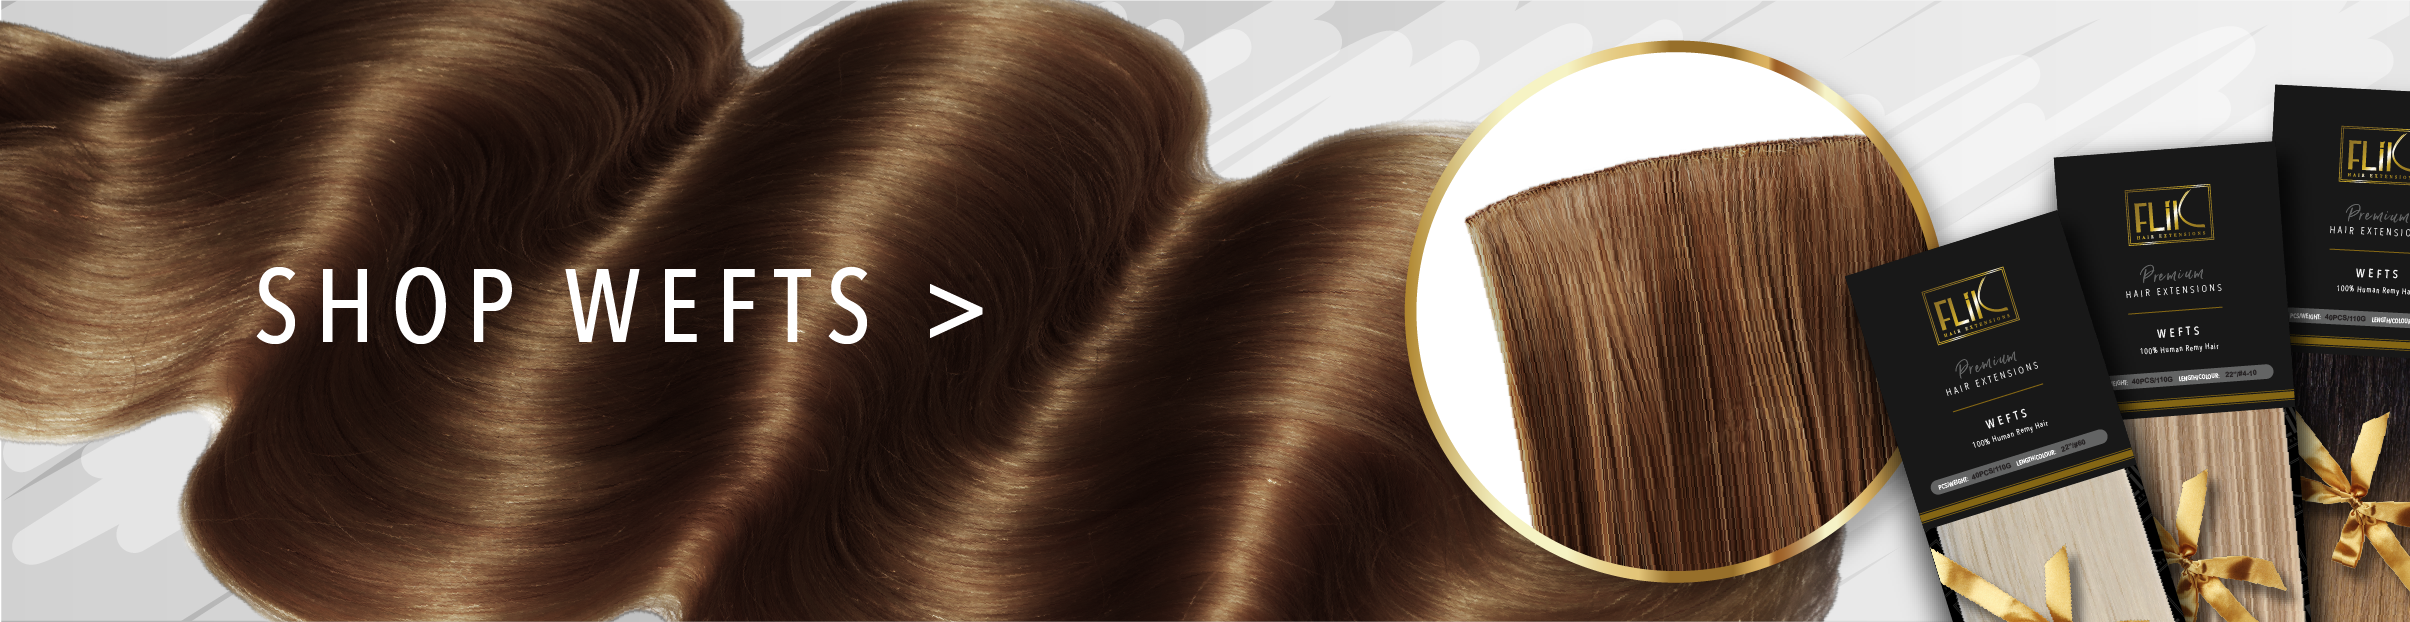 shop-wefts-.png